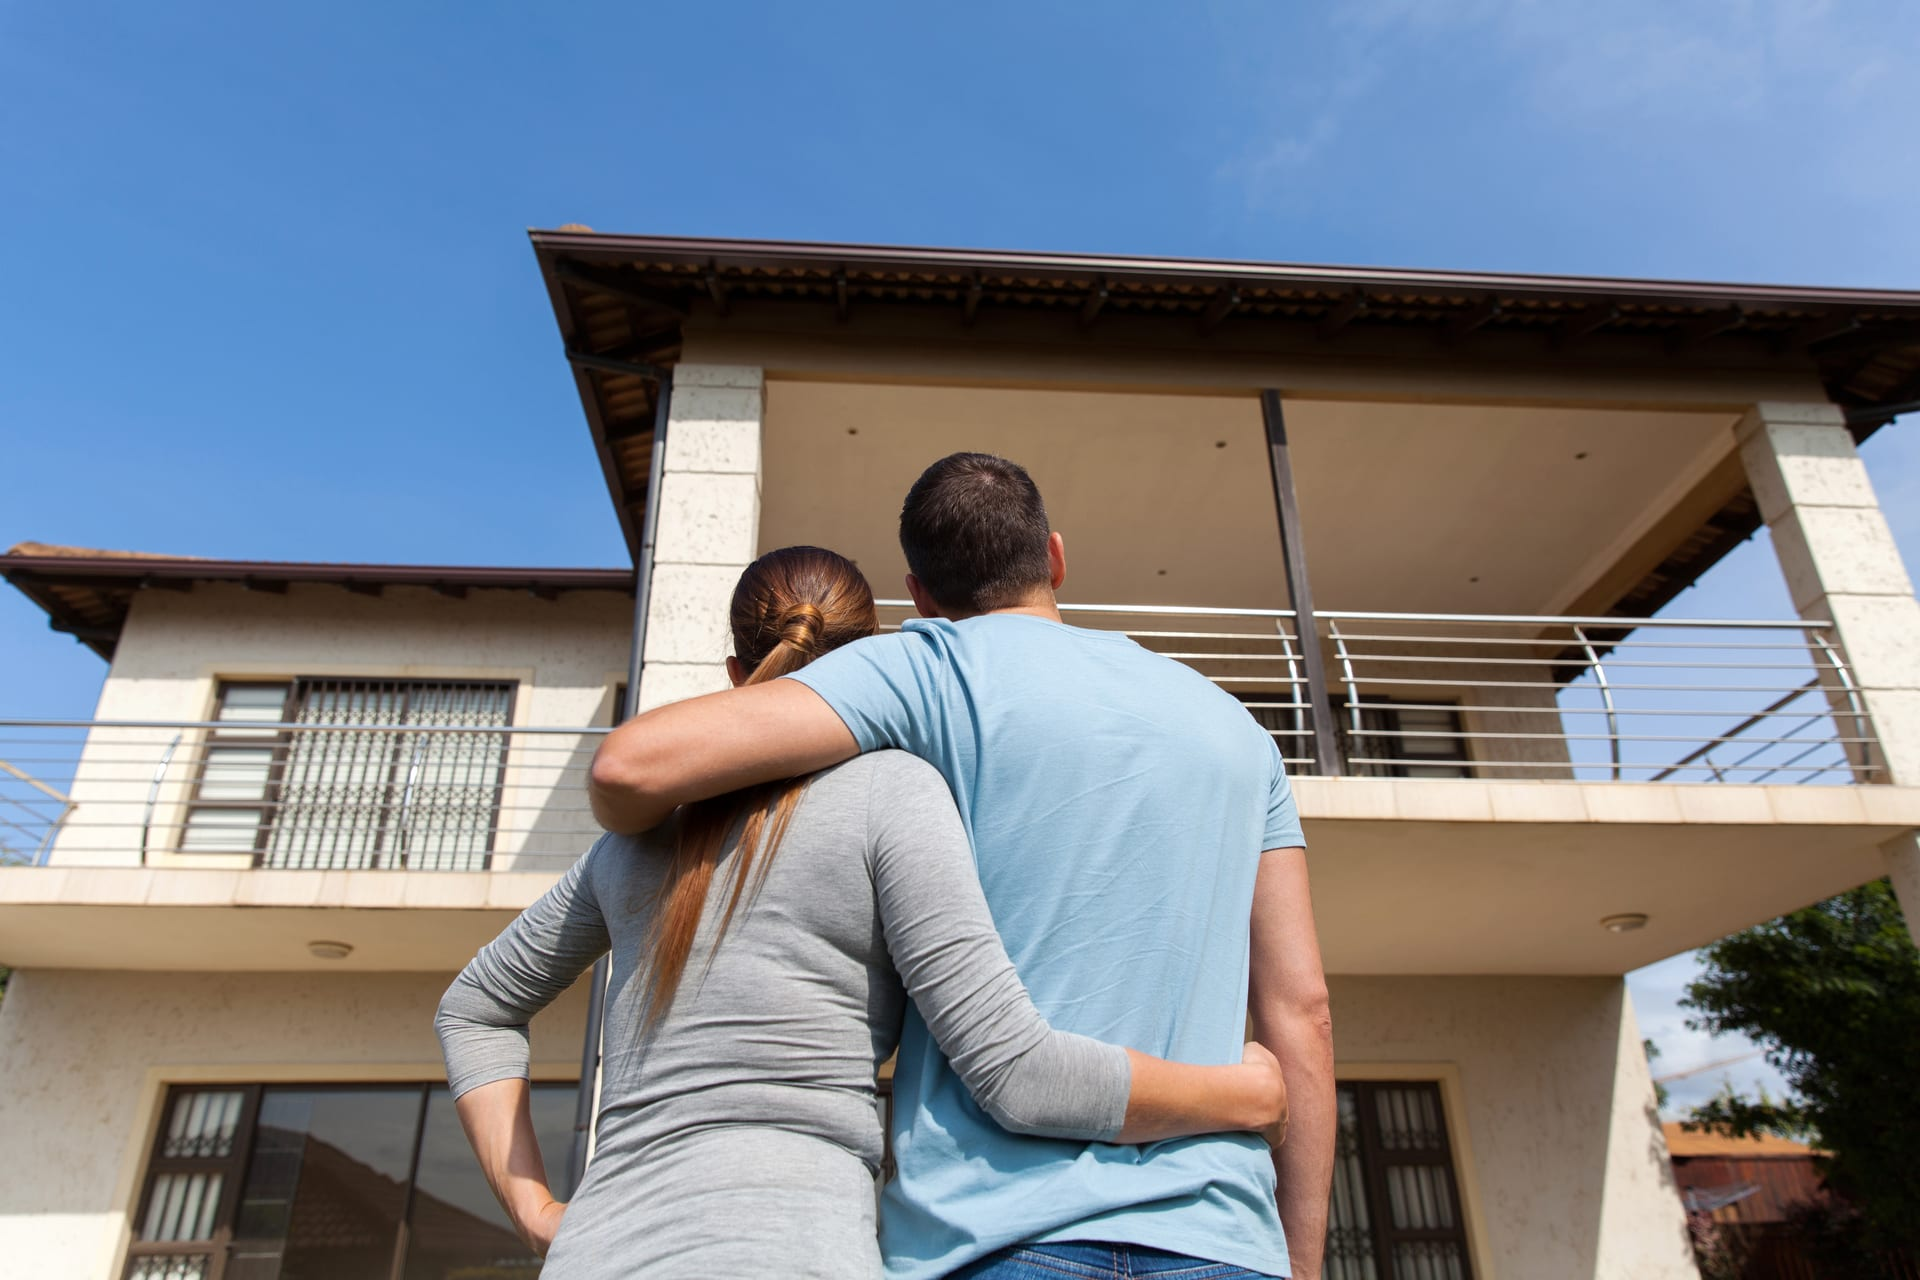 How to Make a Competitive Offer on a House Without a Realtor